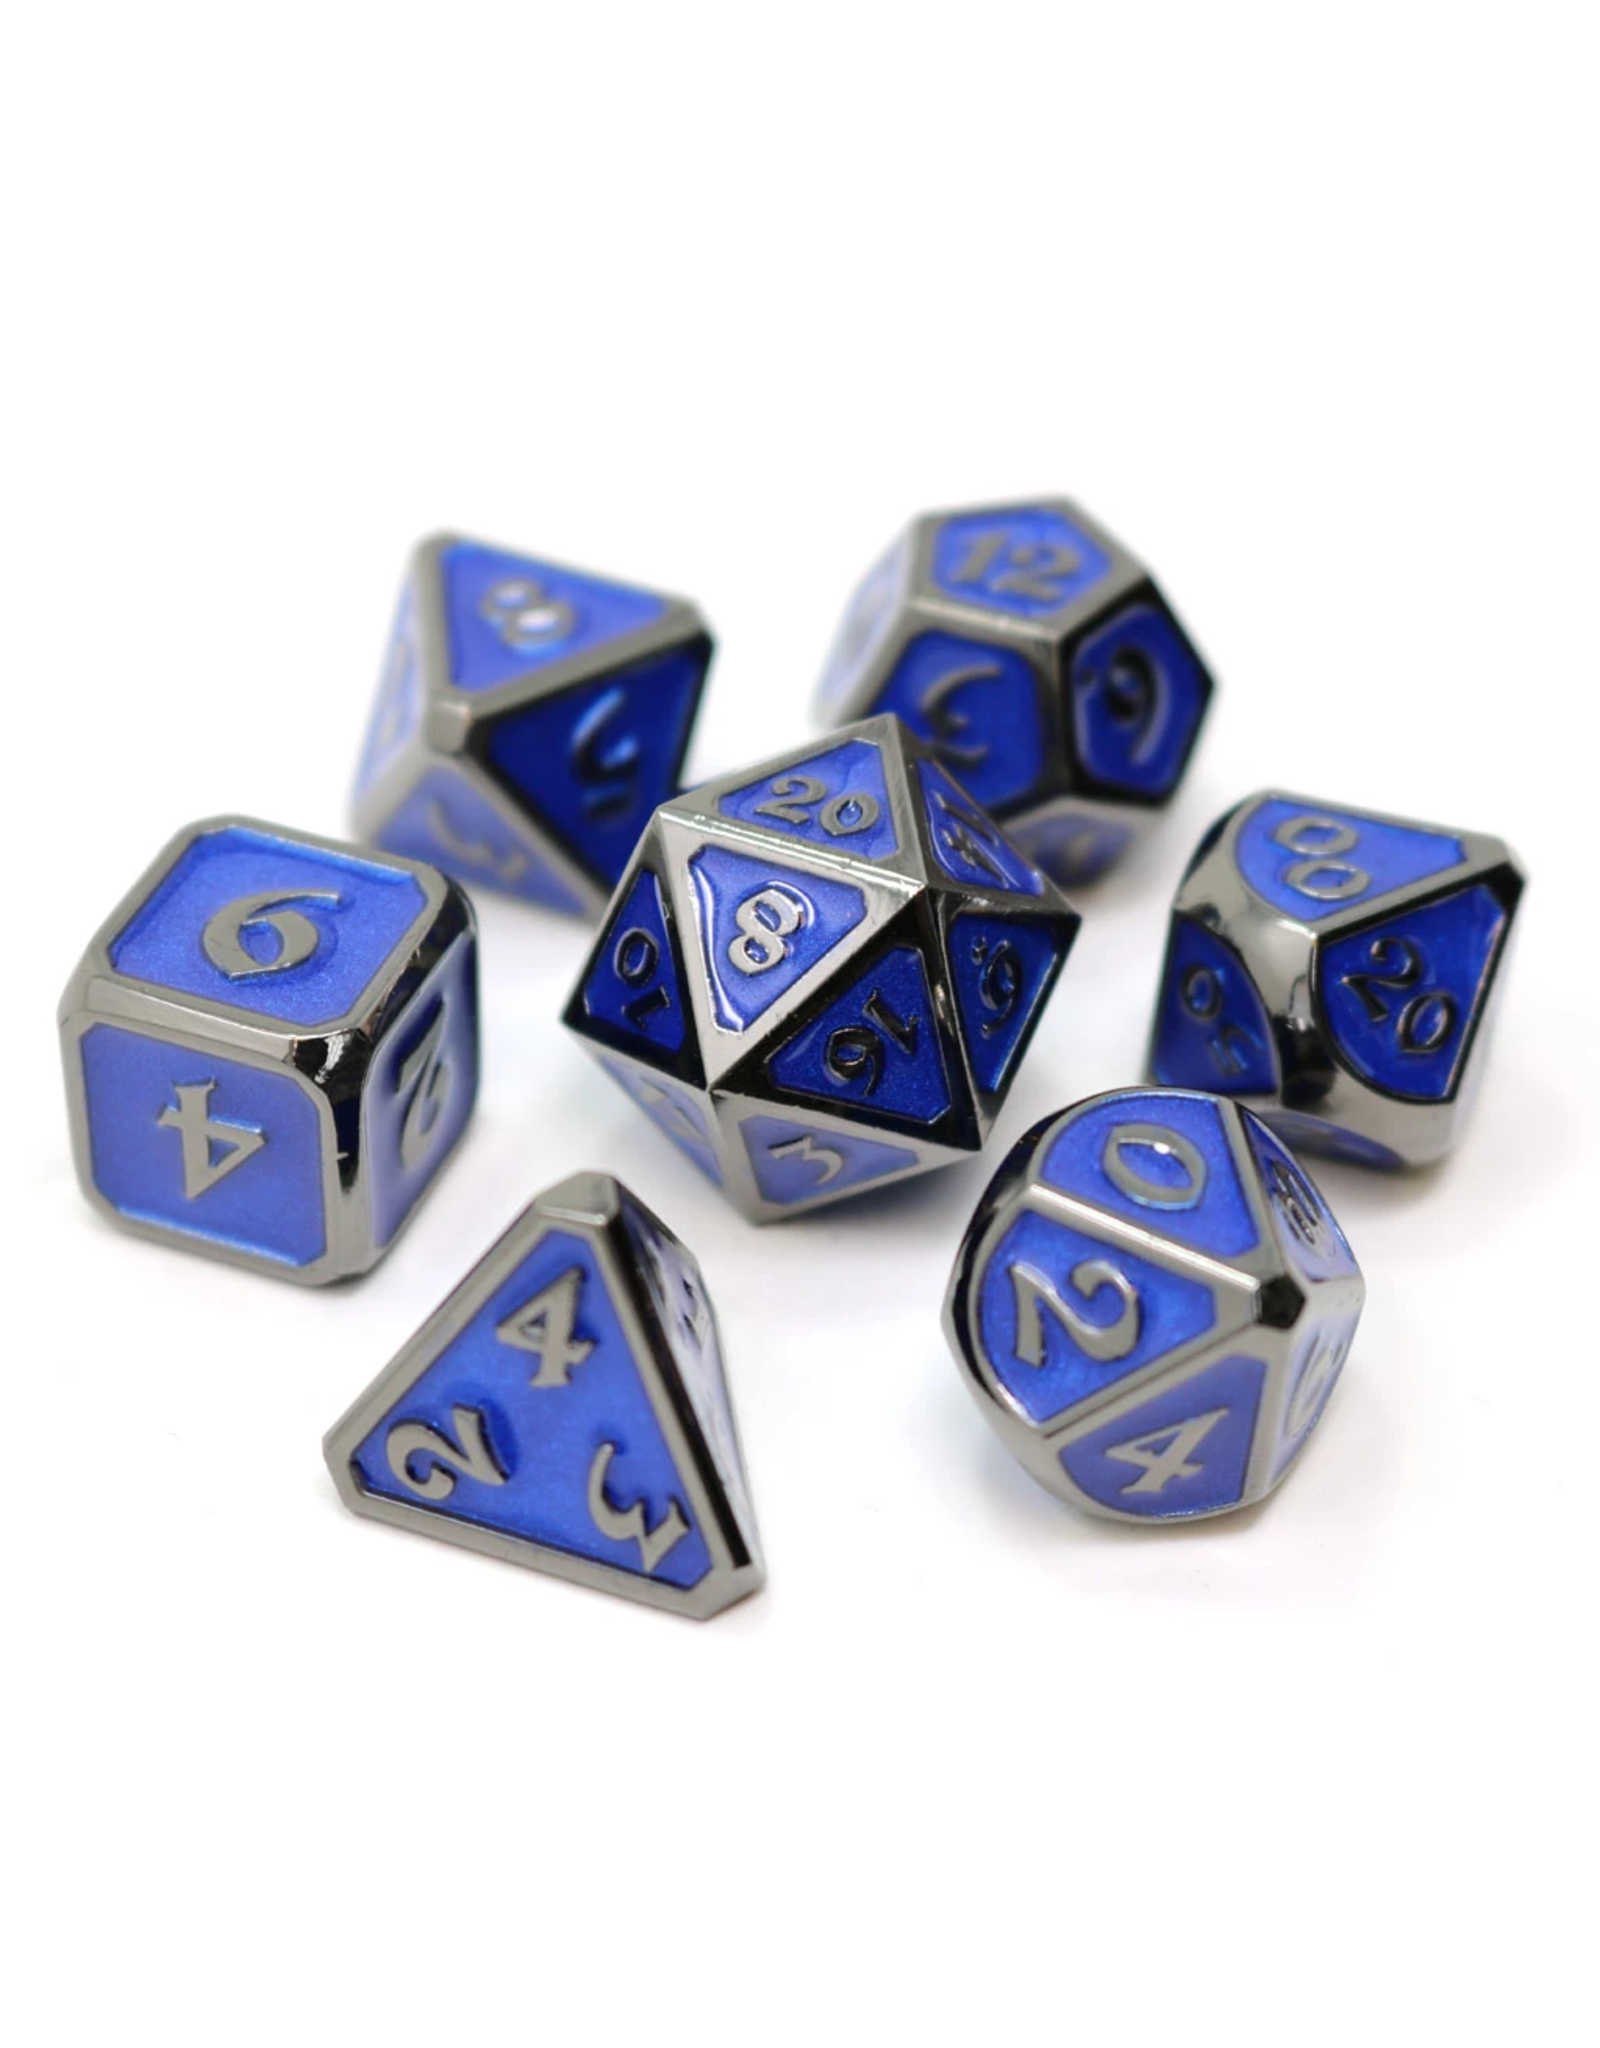 DIE HARD DICE DIE HARD DICE 7CT SET MYTHICA SINISTER SAPPHIRE